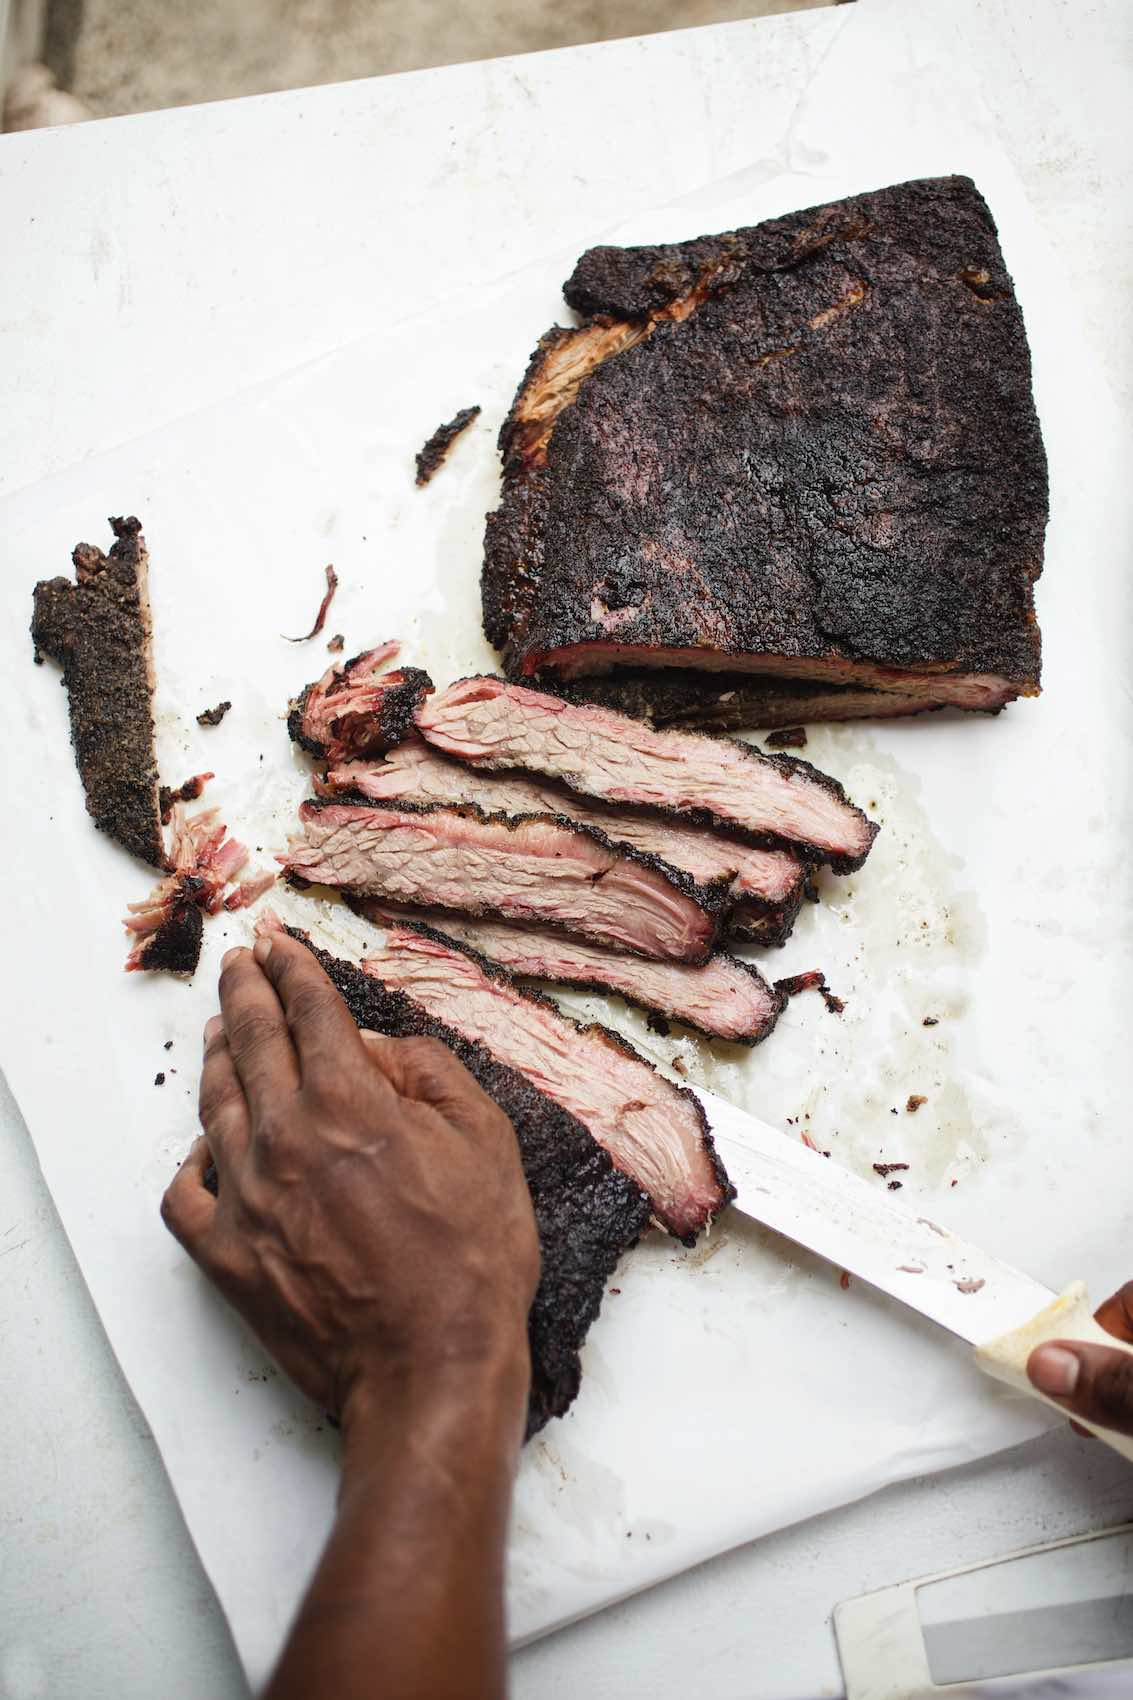 Jody Horton Photography - Brisket sliced on white parchment.